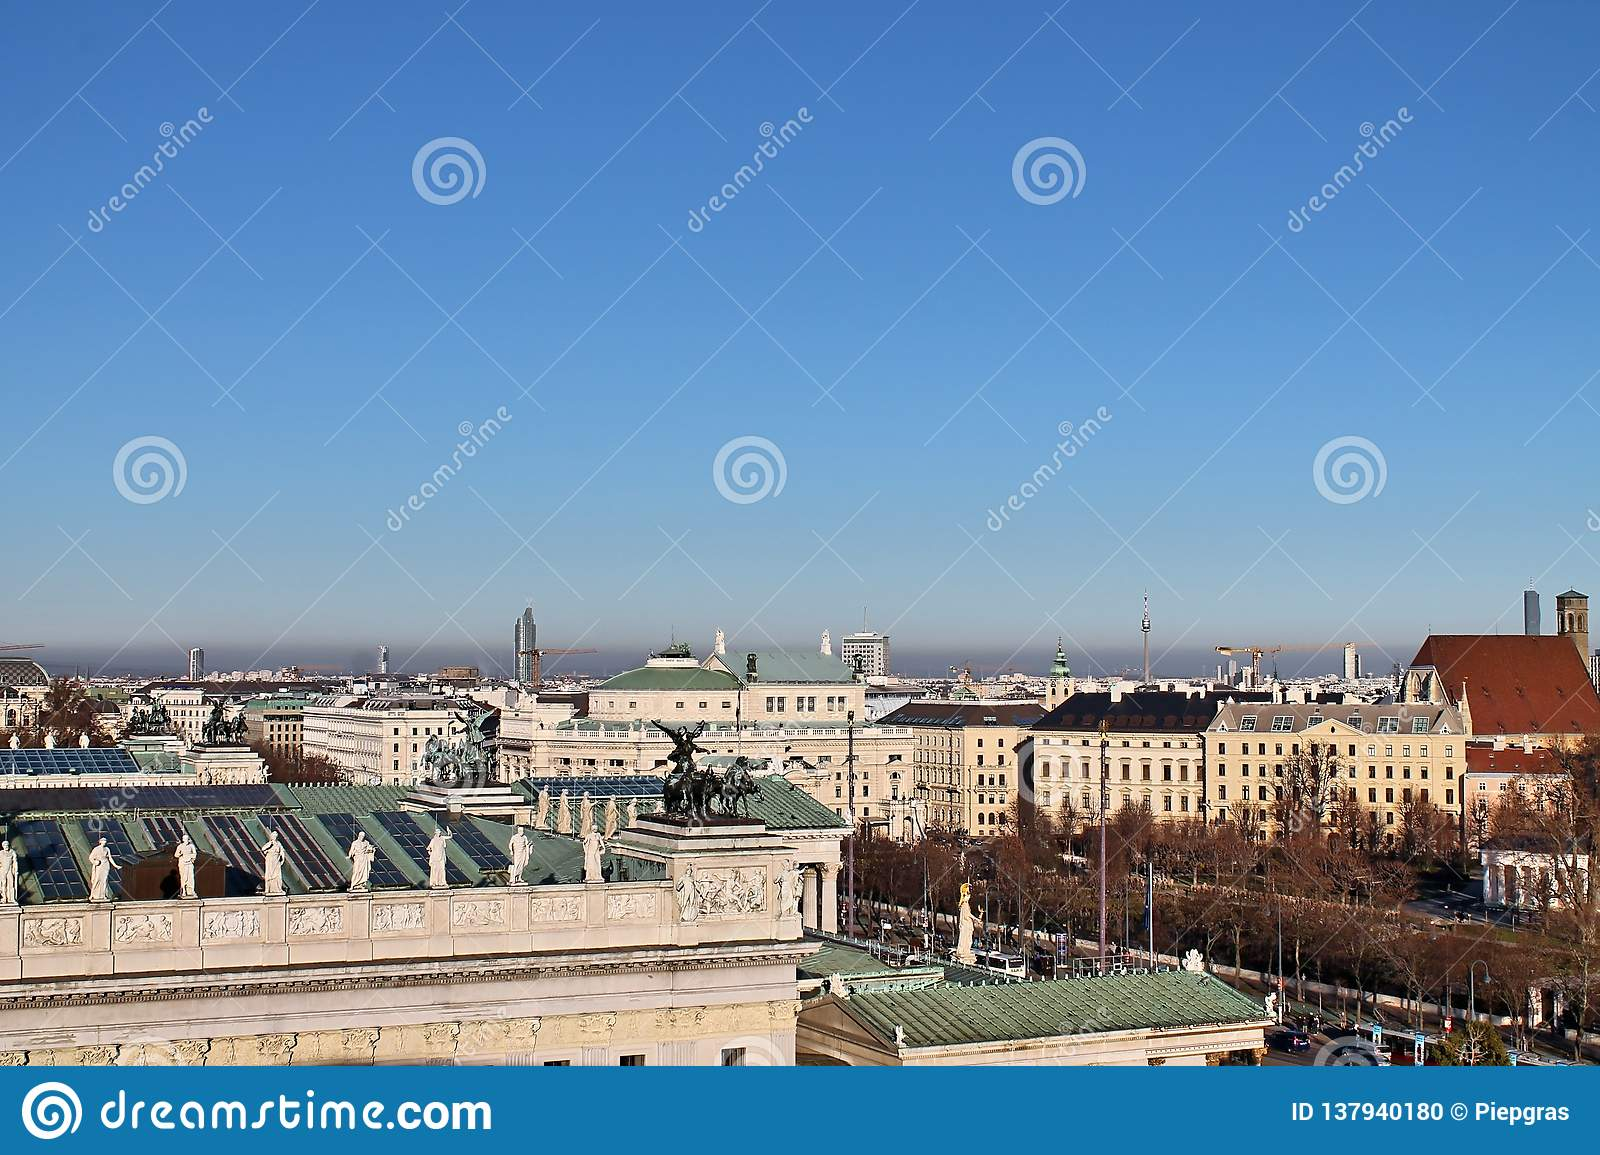 Famous buildings and architecture of Vienna in Austria Europe